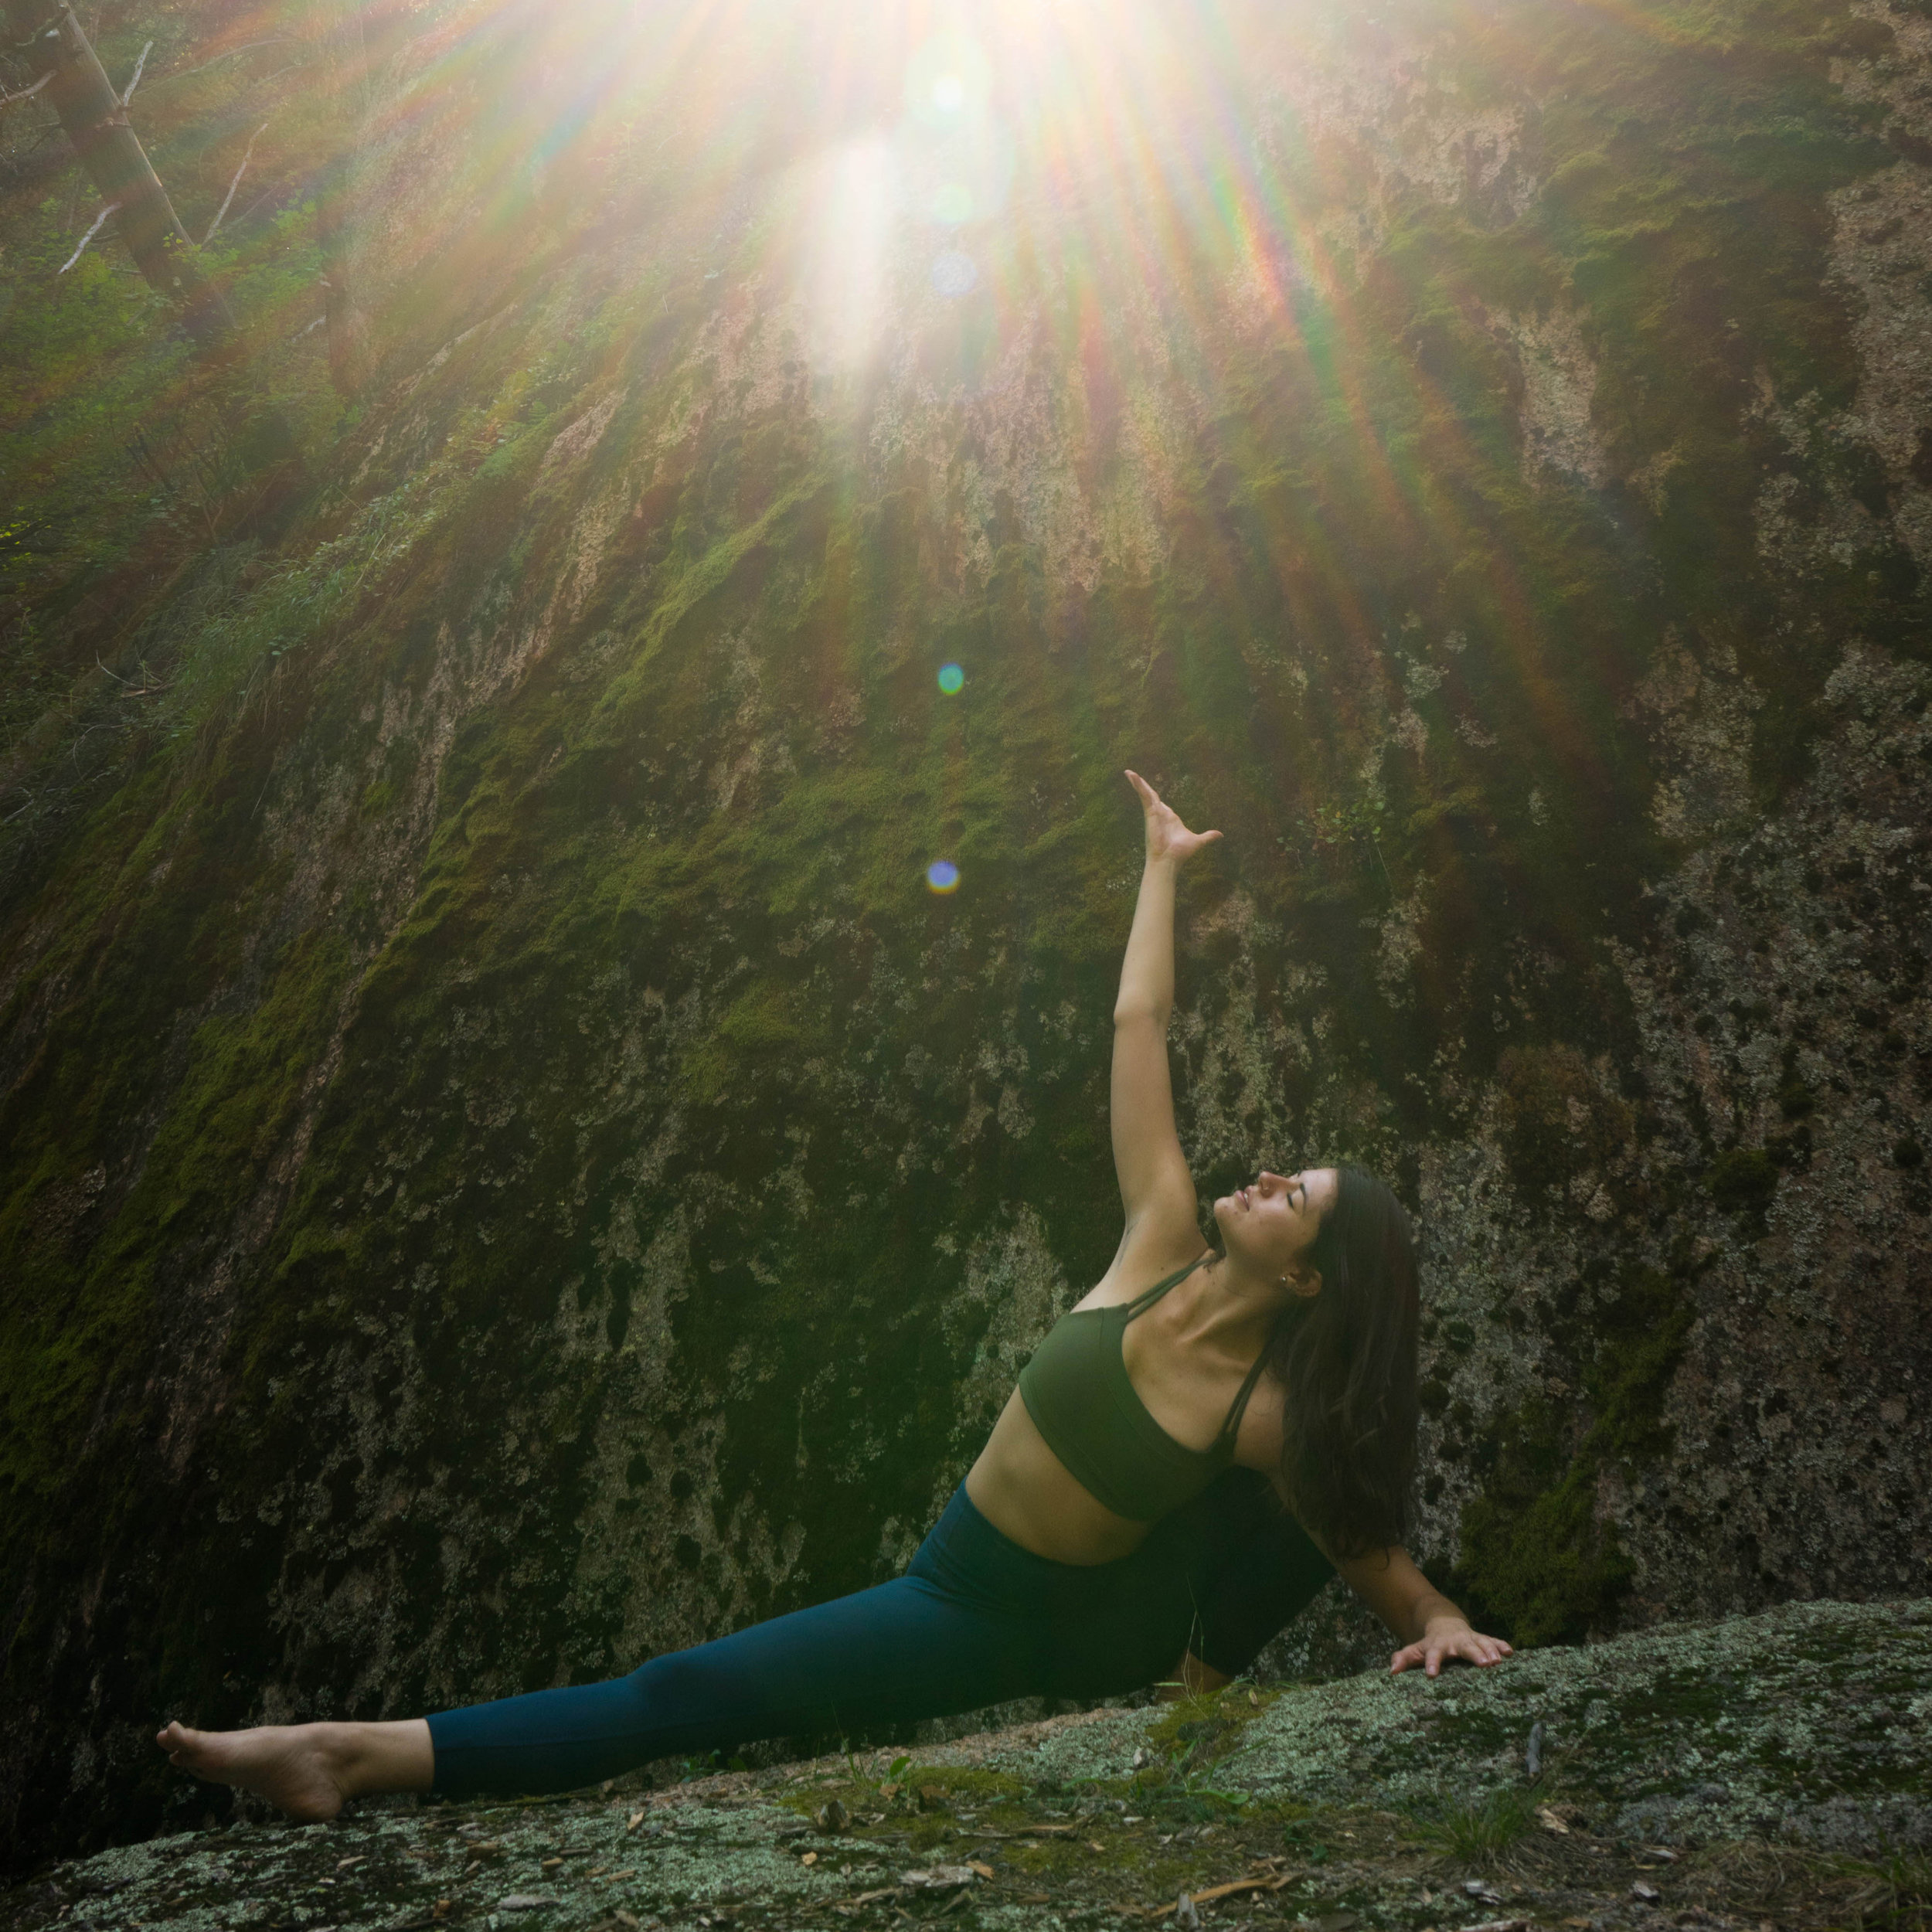 Elements of Yoga - 2 - 4pm | Sunday | 9.23.2018Explore the essentials of yoga & movement to care for your body as whole. Learn to align with life's rhythm for an increased connection to yourself and the world around you. Incorporate earth, fire, water & air within your practice to find stability amongst life's imbalances.